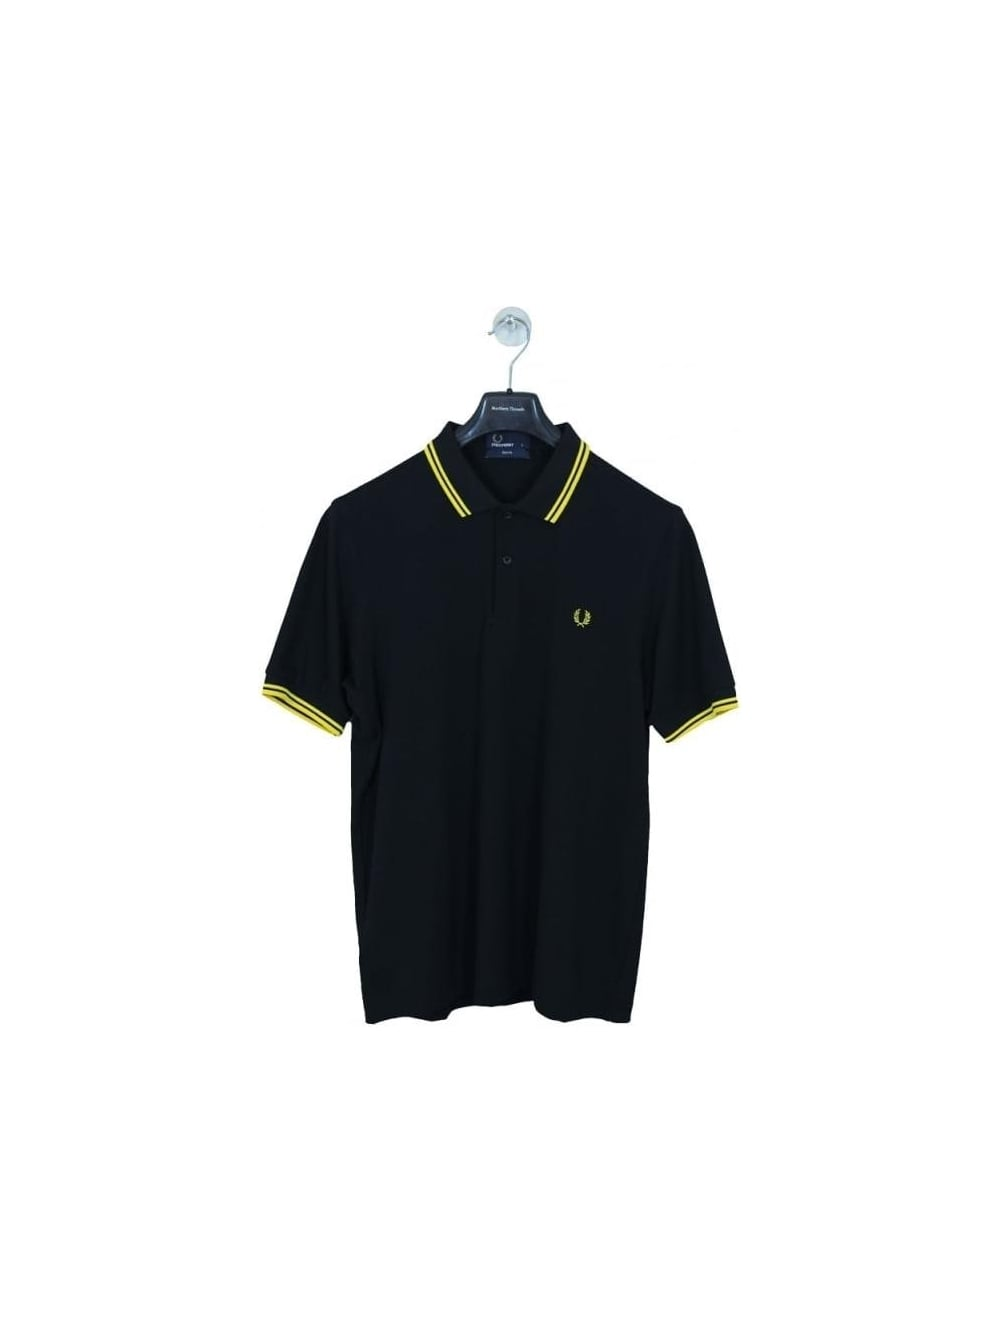 45dcba02346c Fred Perry Slim Fit Twin Tipped Polo in Black Yellow - Northern Threads